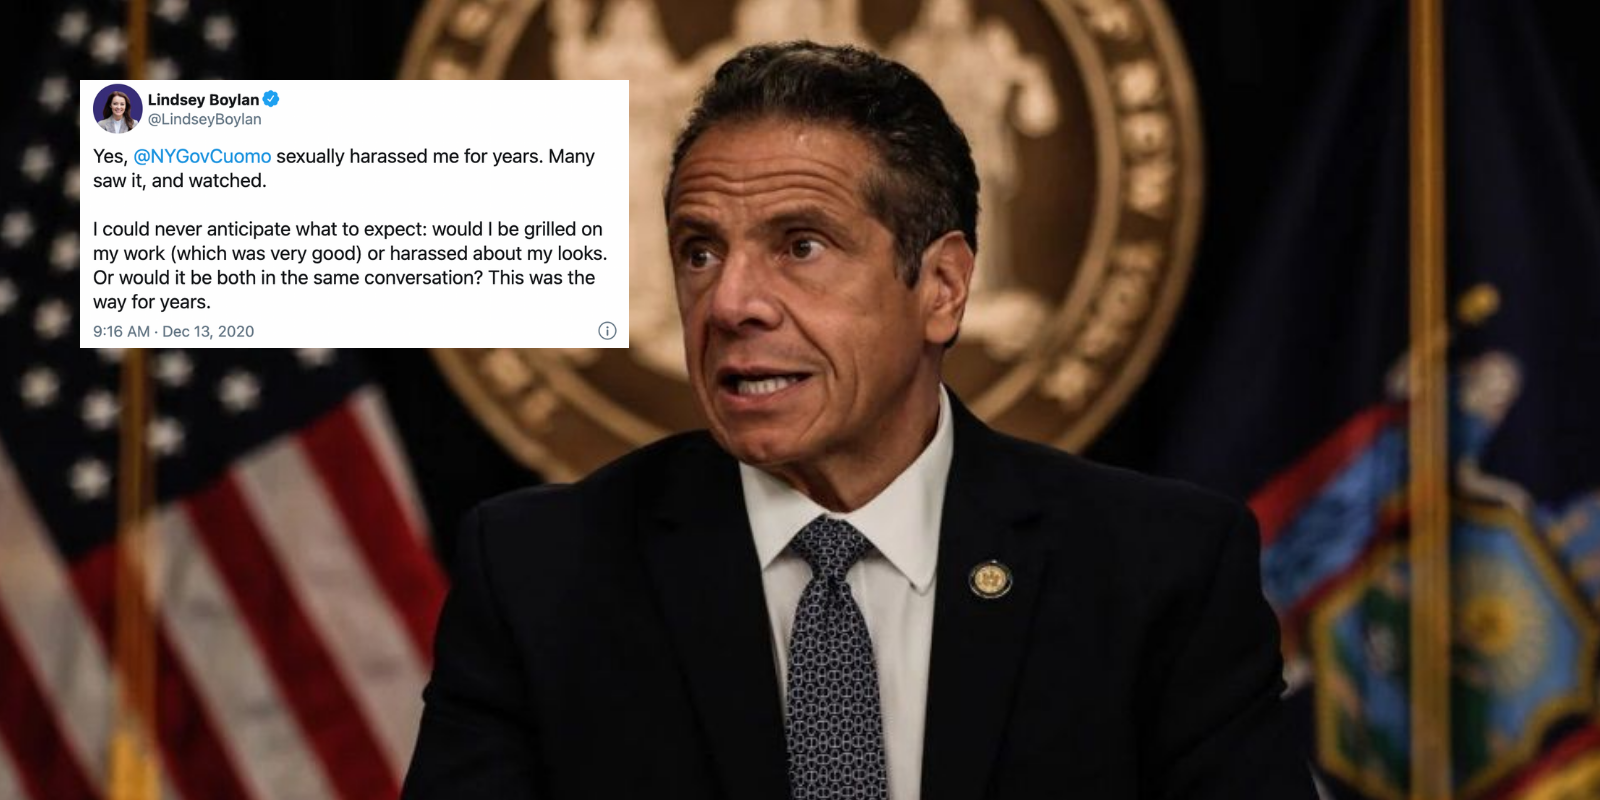 BREAKING: NY Governor Cuomo accused of sexual harassment by former government official